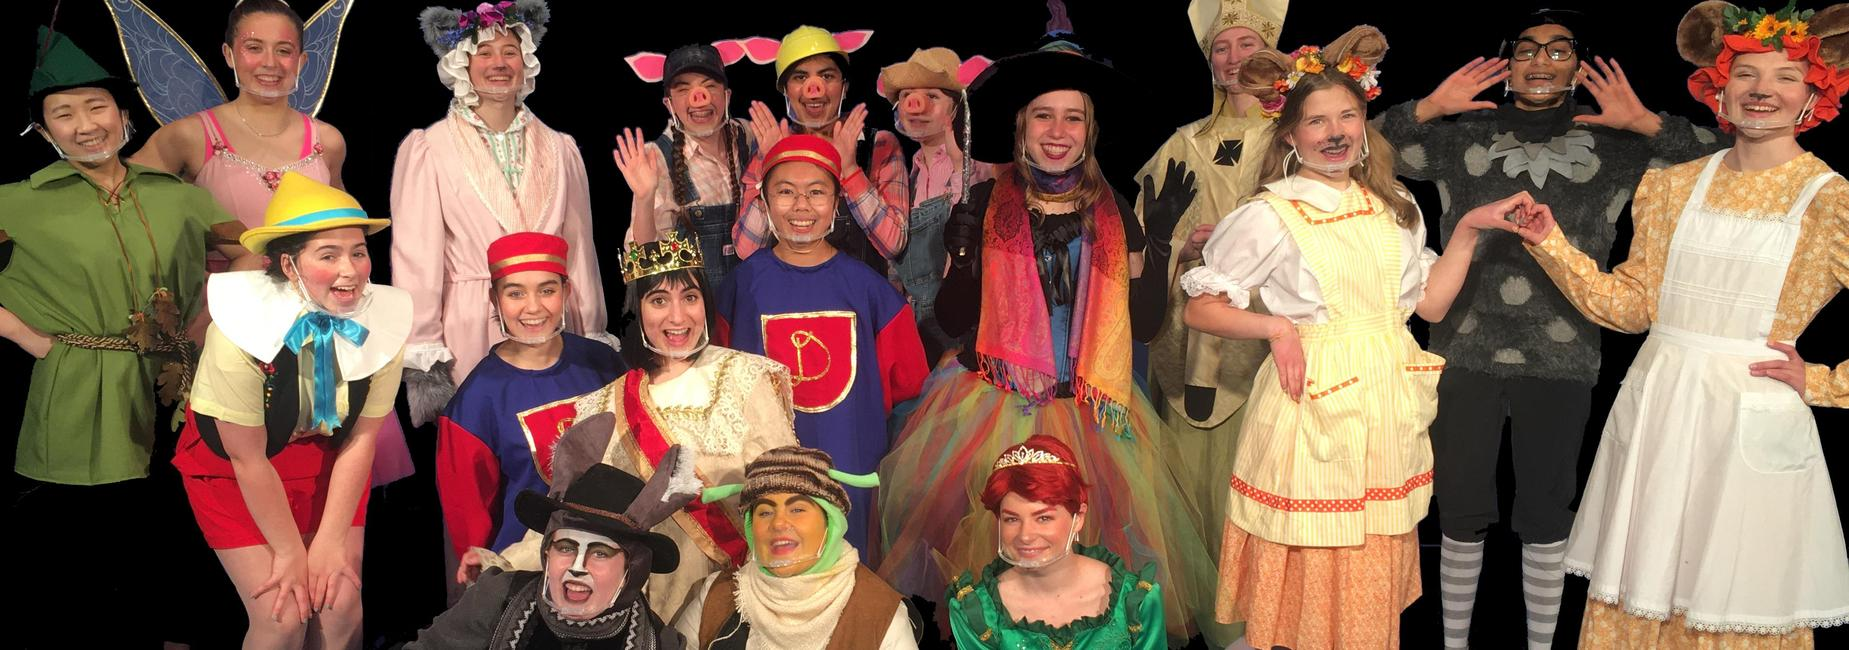 Photo of Wesmtont's cast for SHREK The Musical